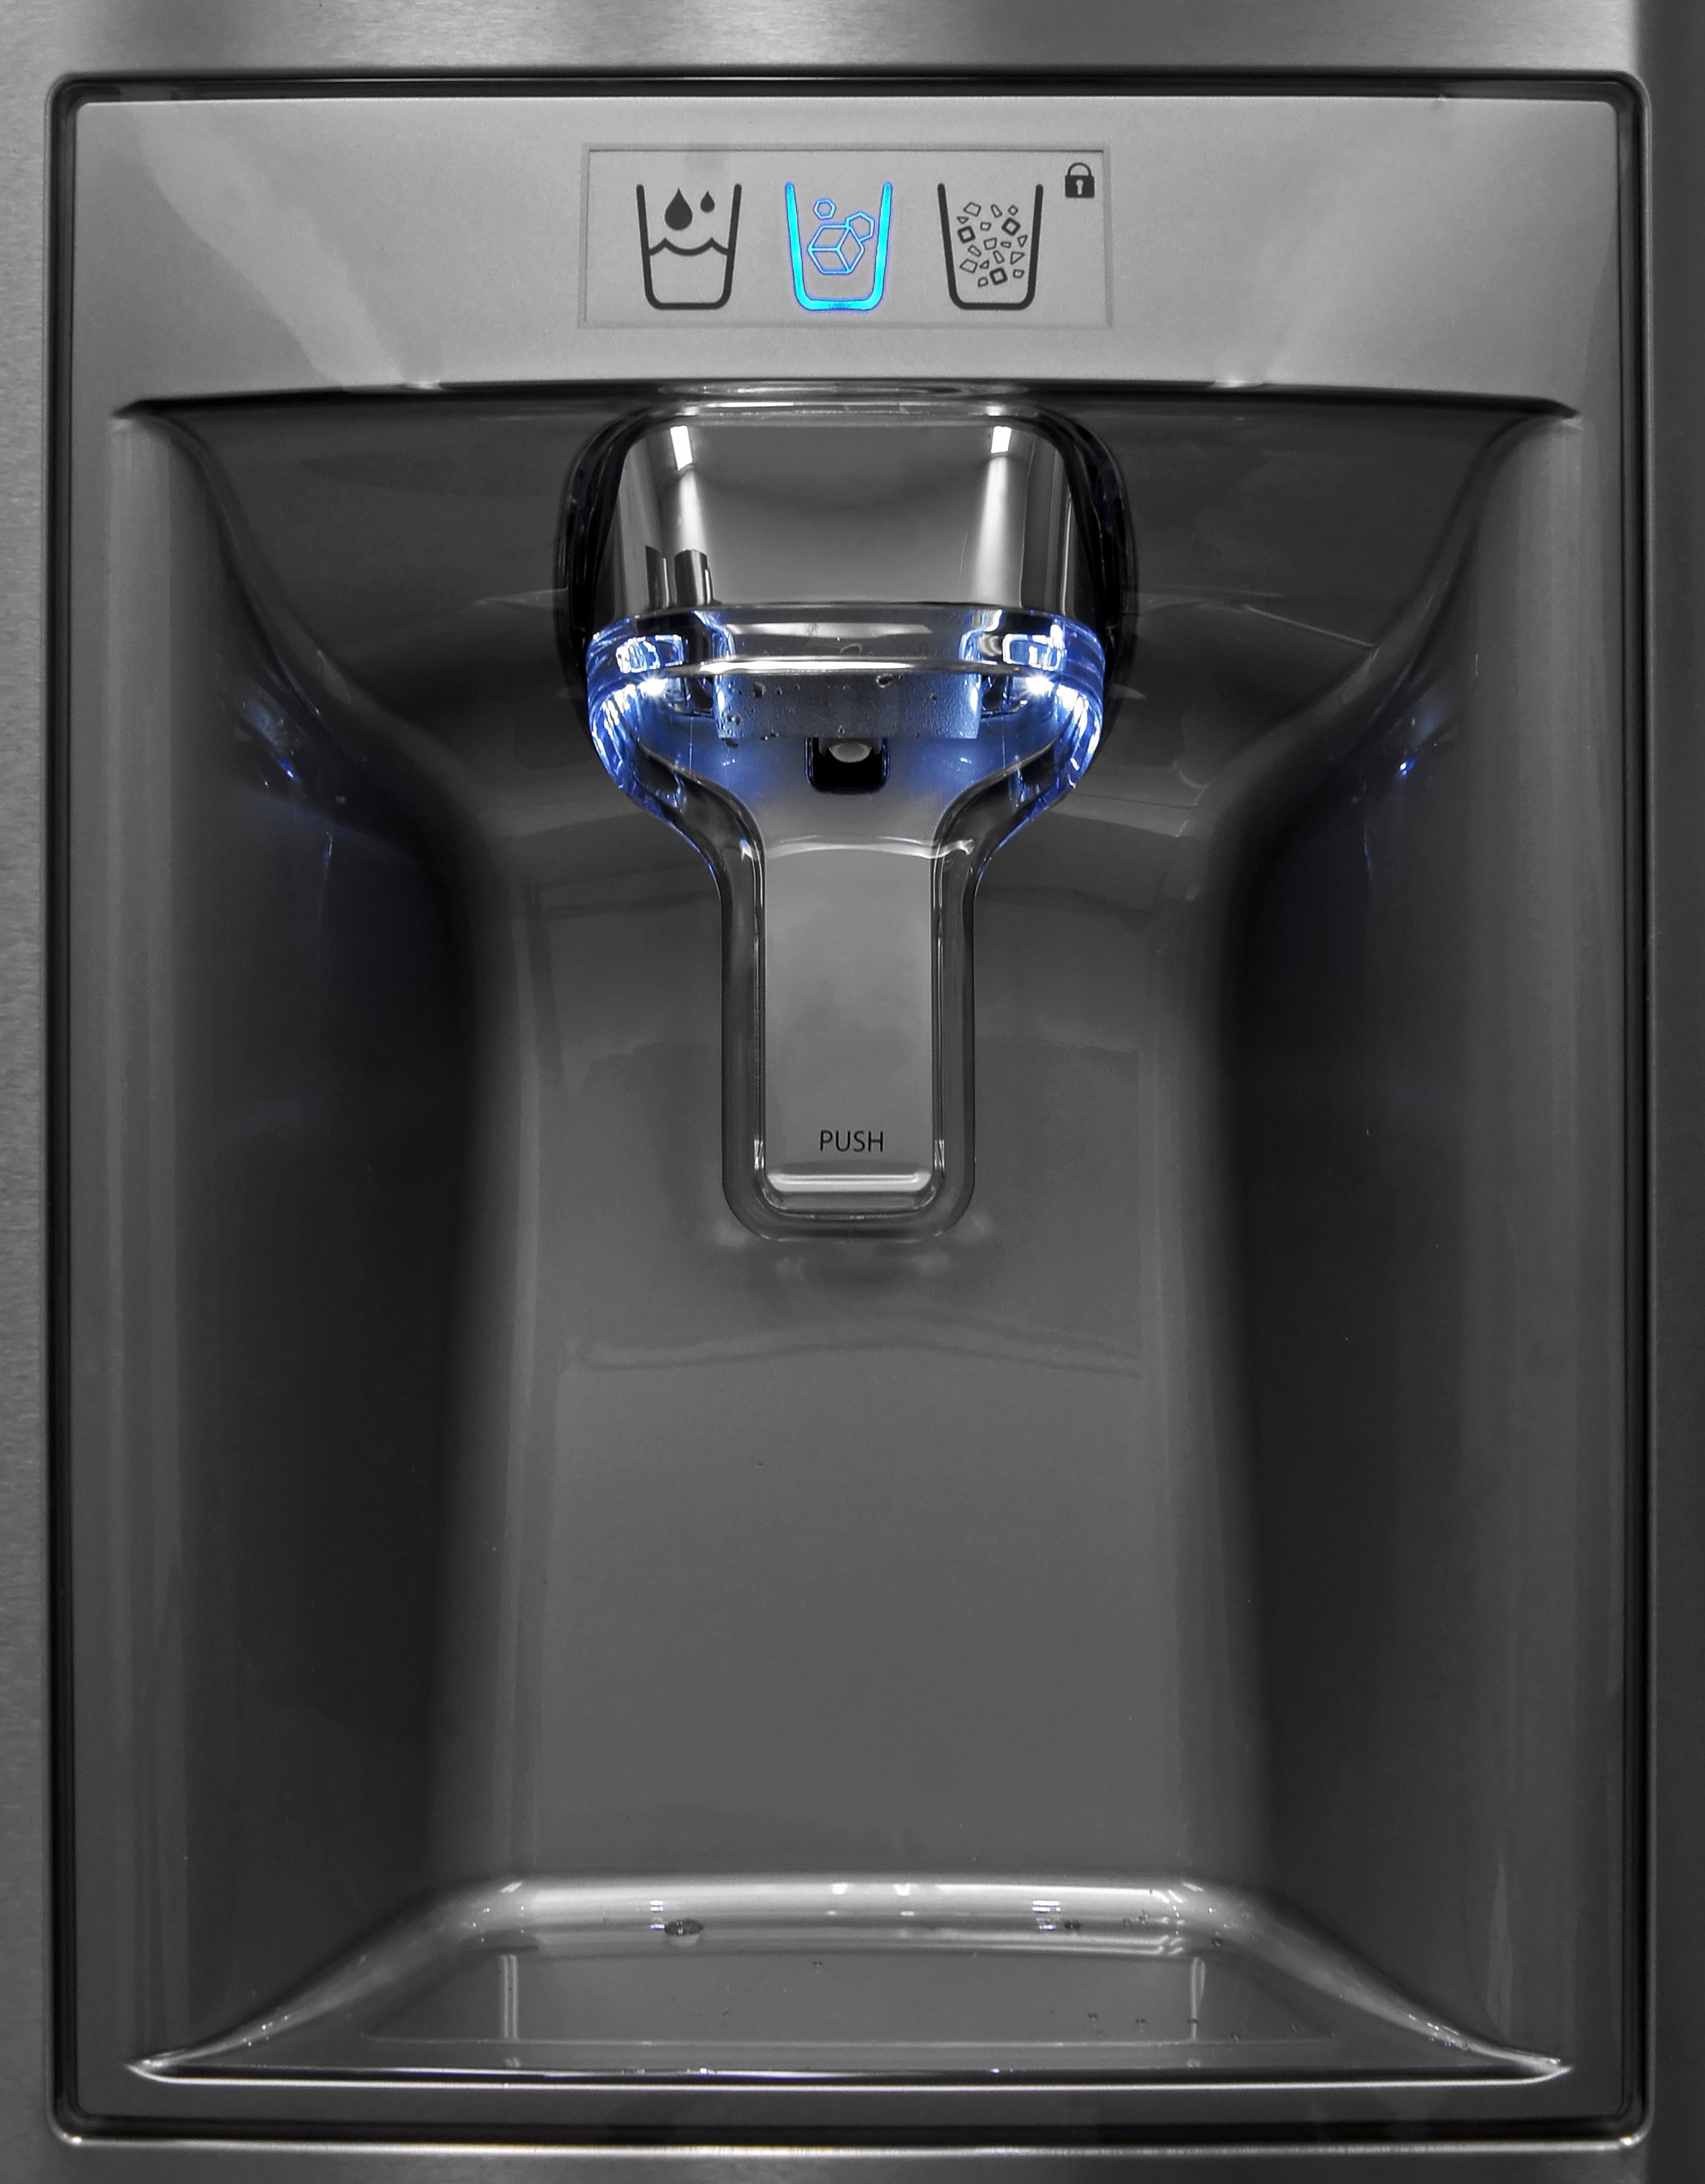 With the rest of the controls inside the Kenmore Elite 72483, the dispenser has an elegant and minimalist style.